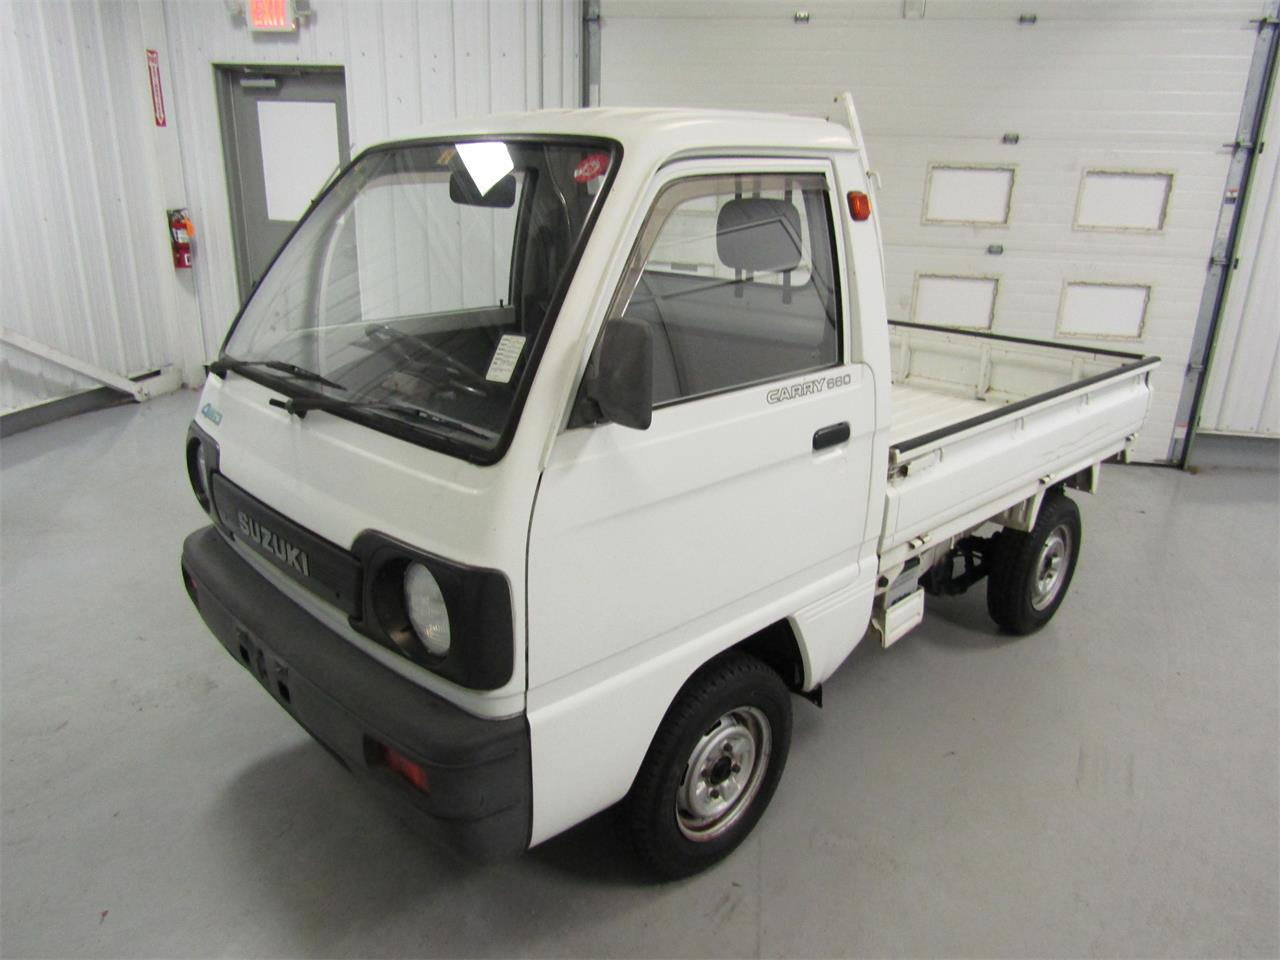 1991 Suzuki Carry for sale in Christiansburg, VA – photo 6